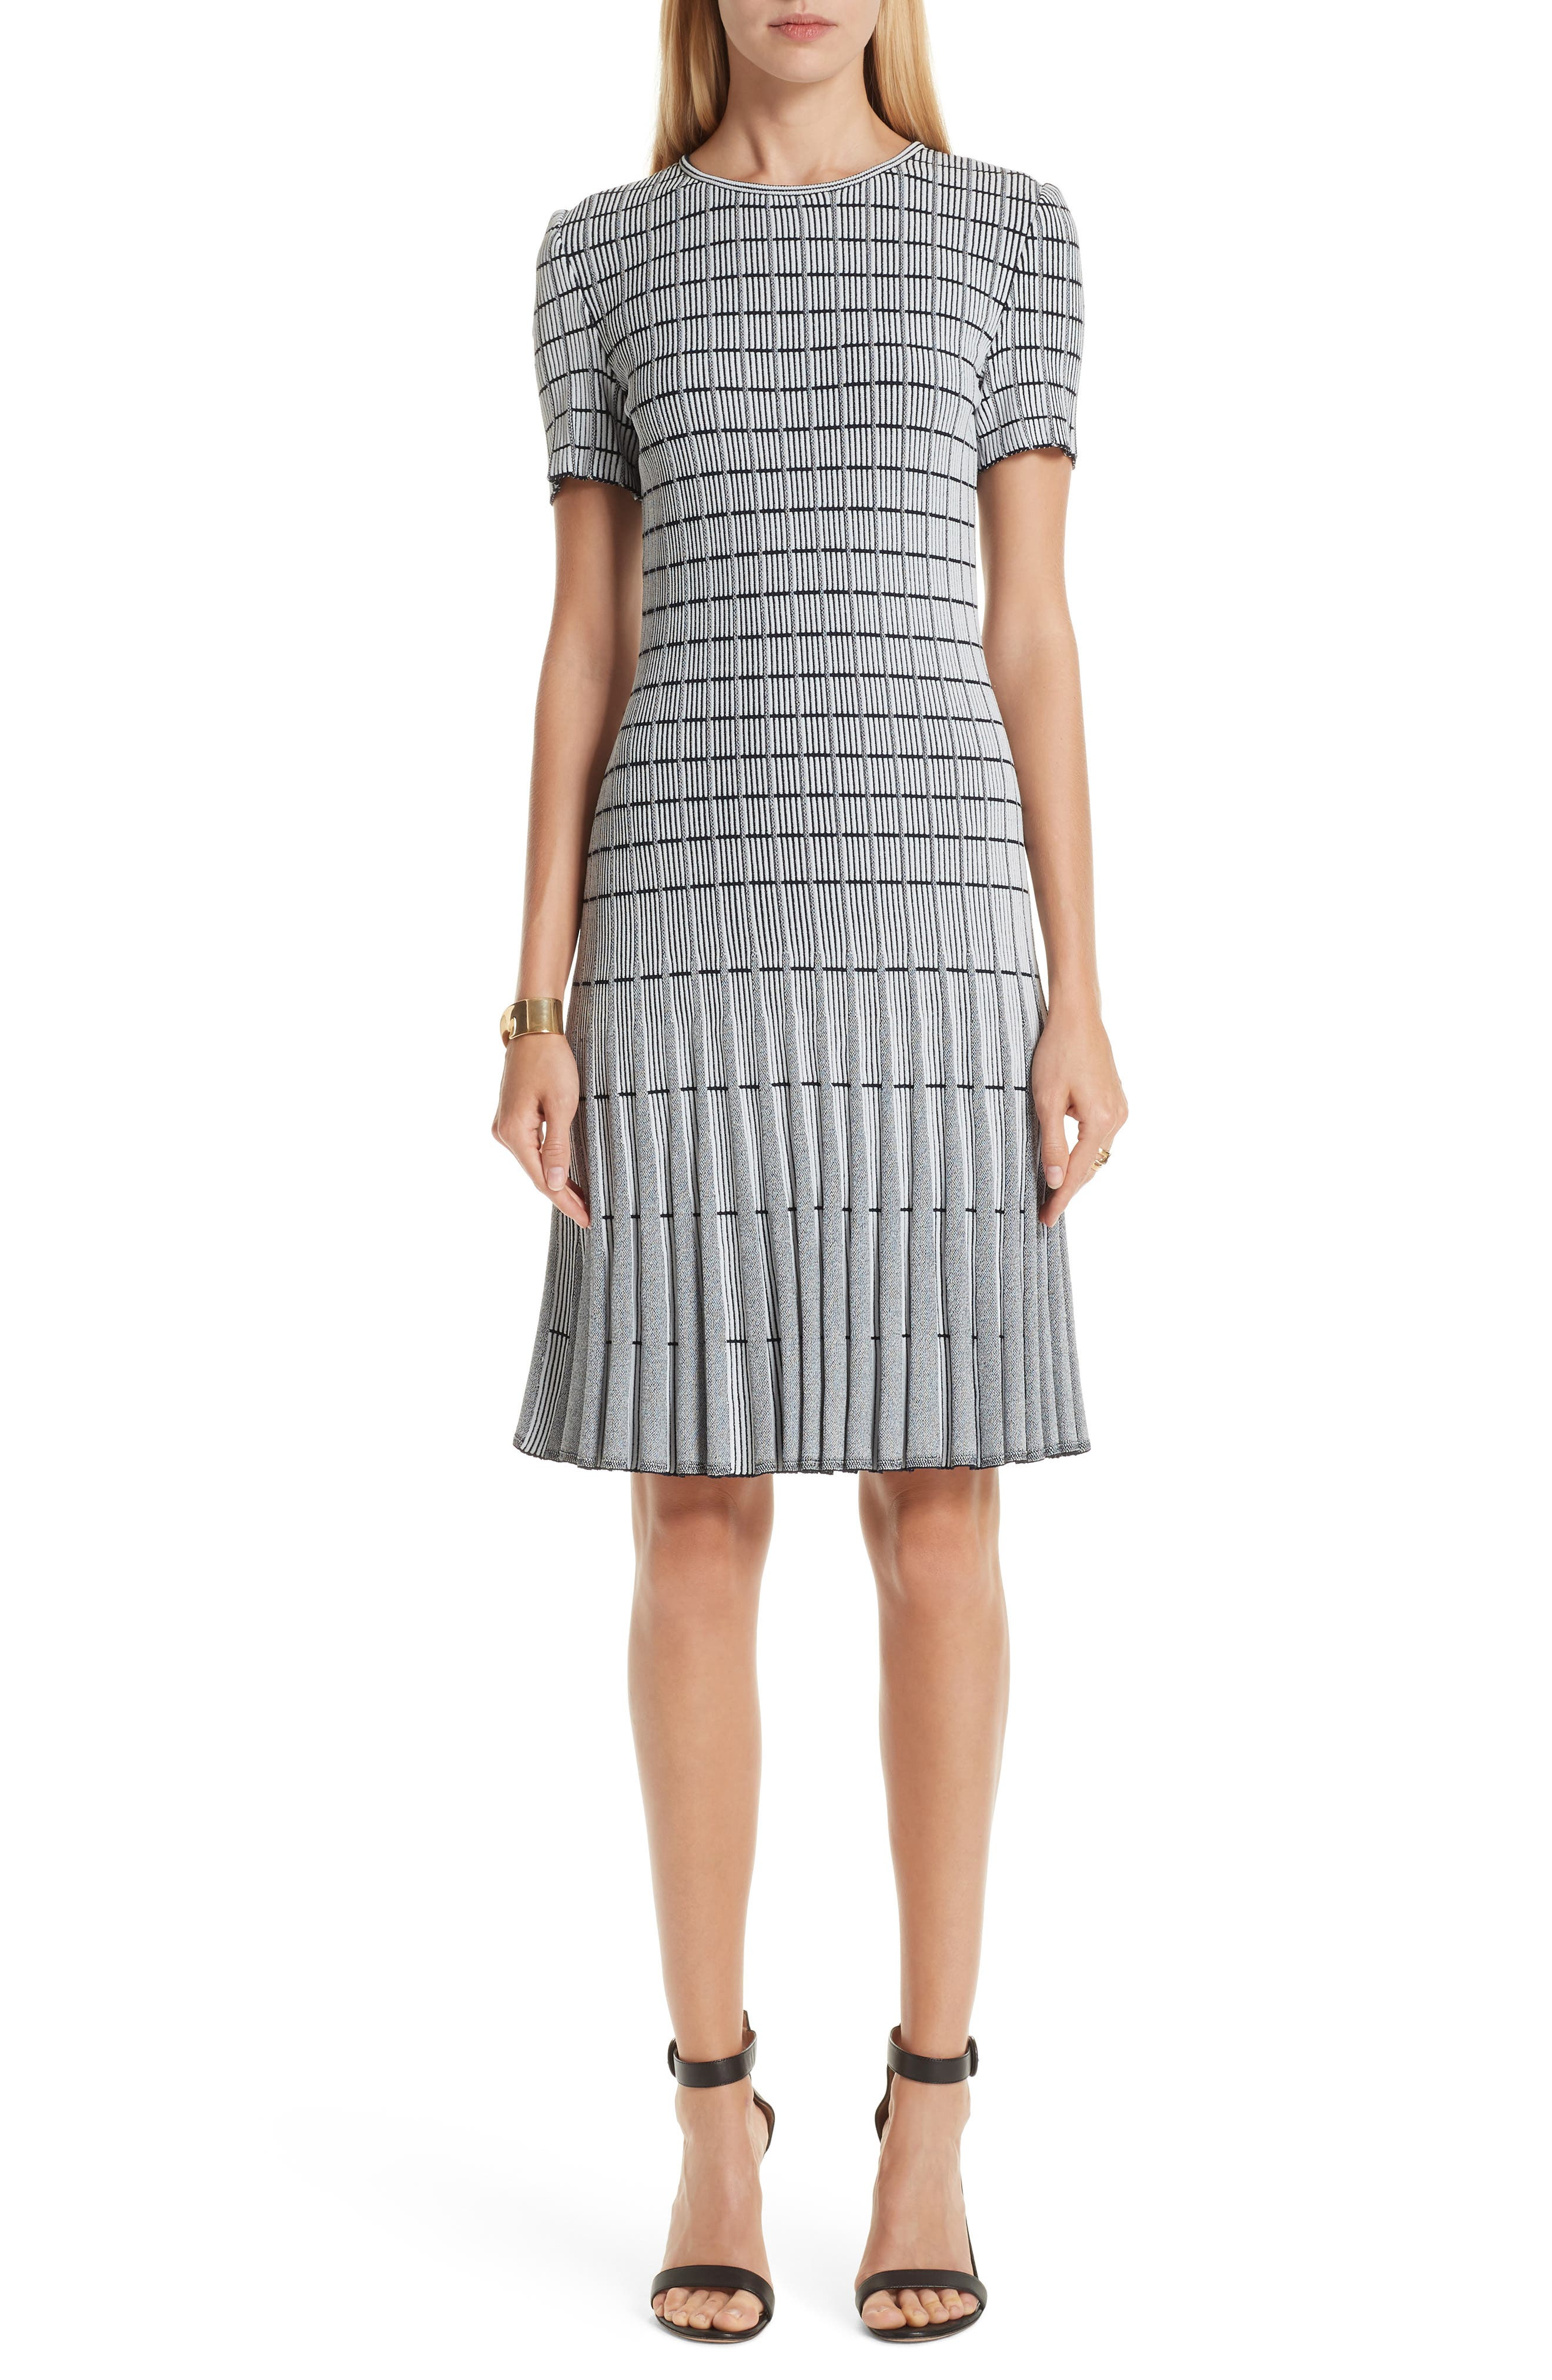 Jewel-Neck Short-Sleeve Monochrome Ottoman Knit Fit-And-Flare Dress in Grey/ Navy